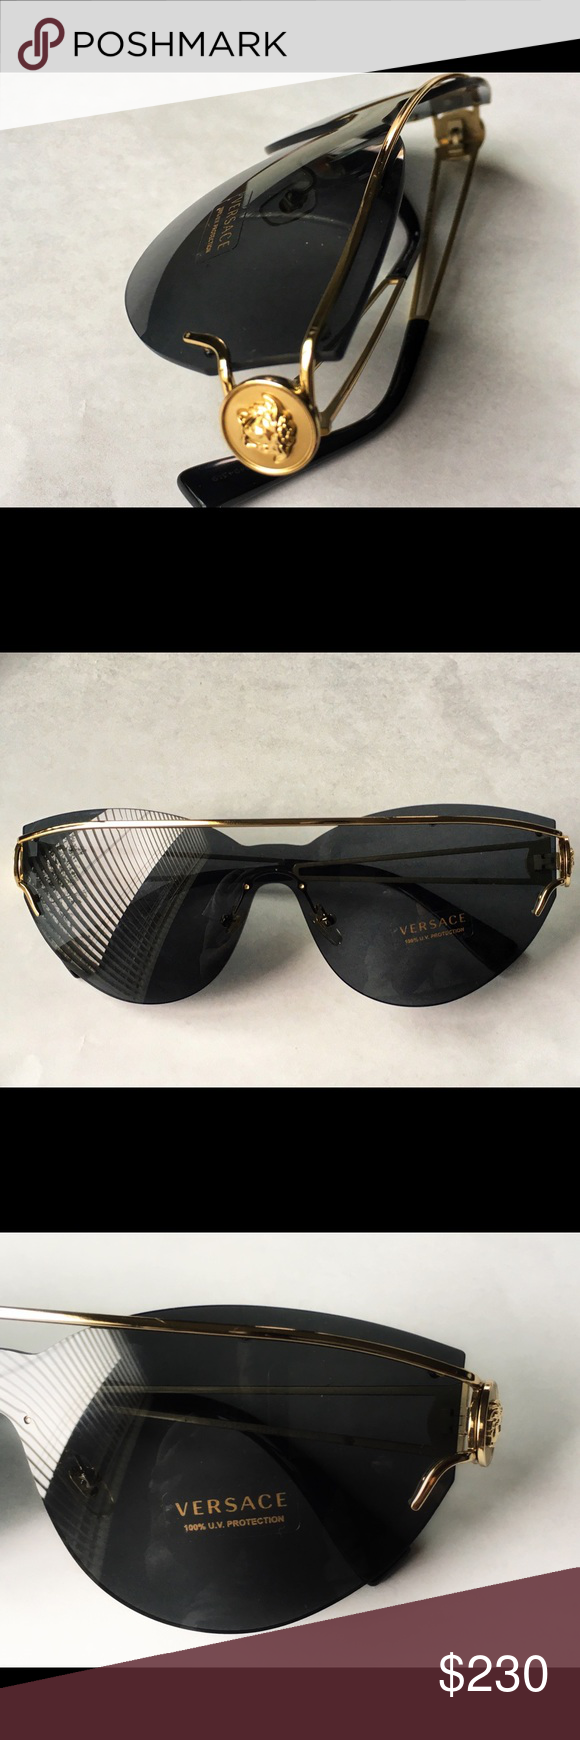 135c0662dc89 Versace Sunglasses Brand New Case and Cloth Included Versace Accessories  Sunglasses